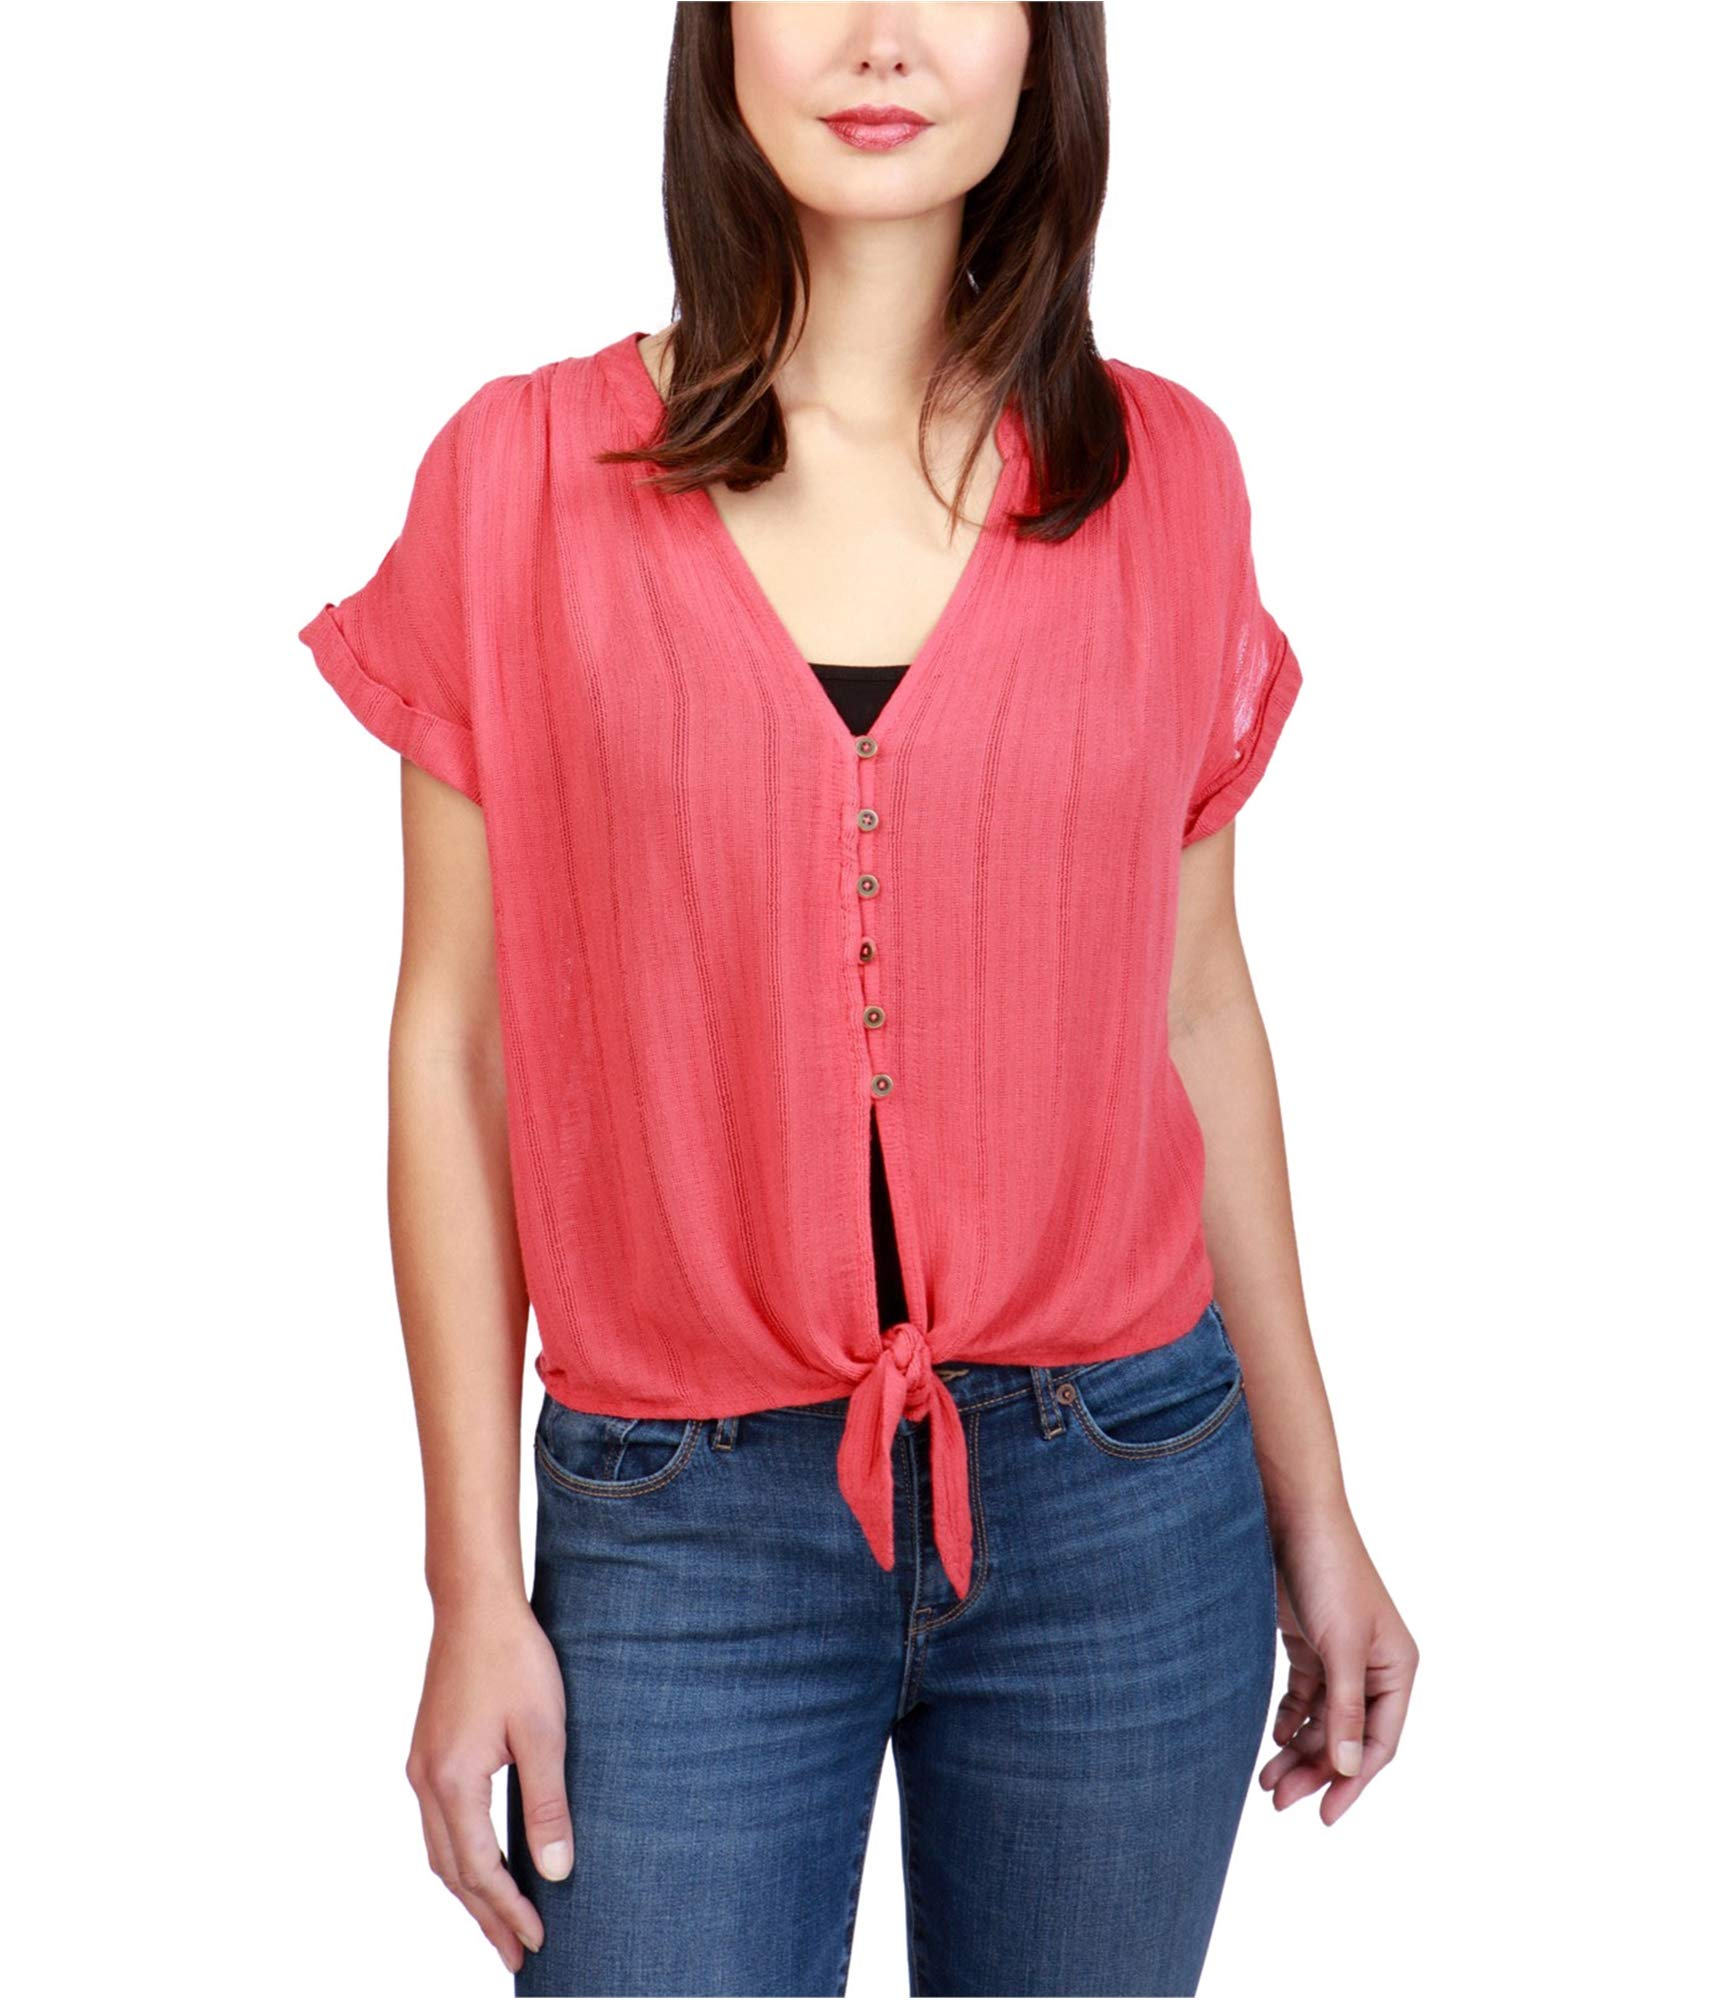 Lucky Brand Women's Woven Tie Front Top, Mars red, Small